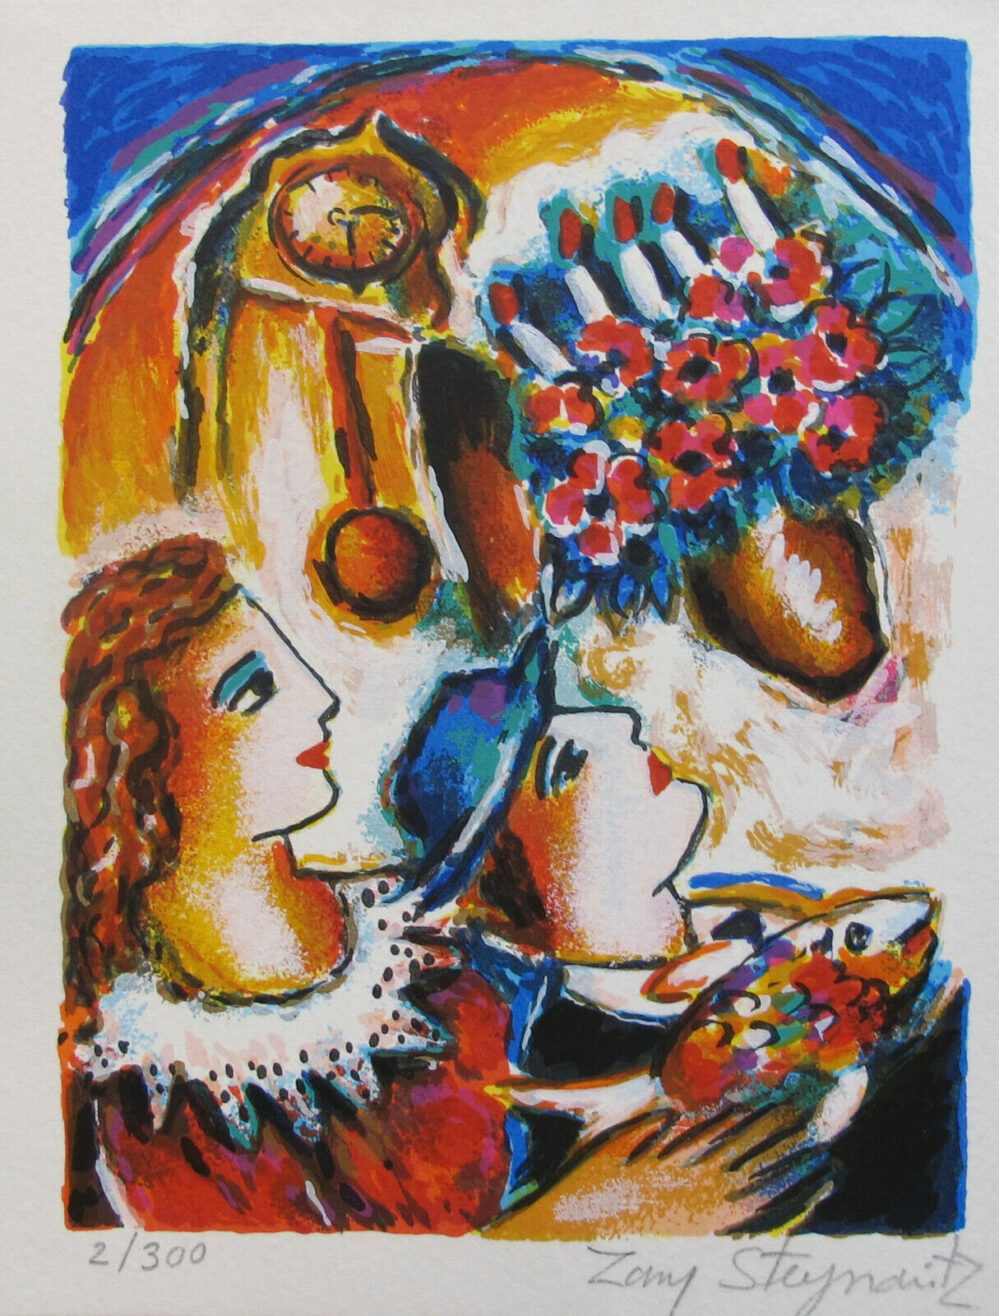 ZAMY STEYNOVITZ SHABBAT SUNDOWN Hand Signed Limited Edition Lithograph